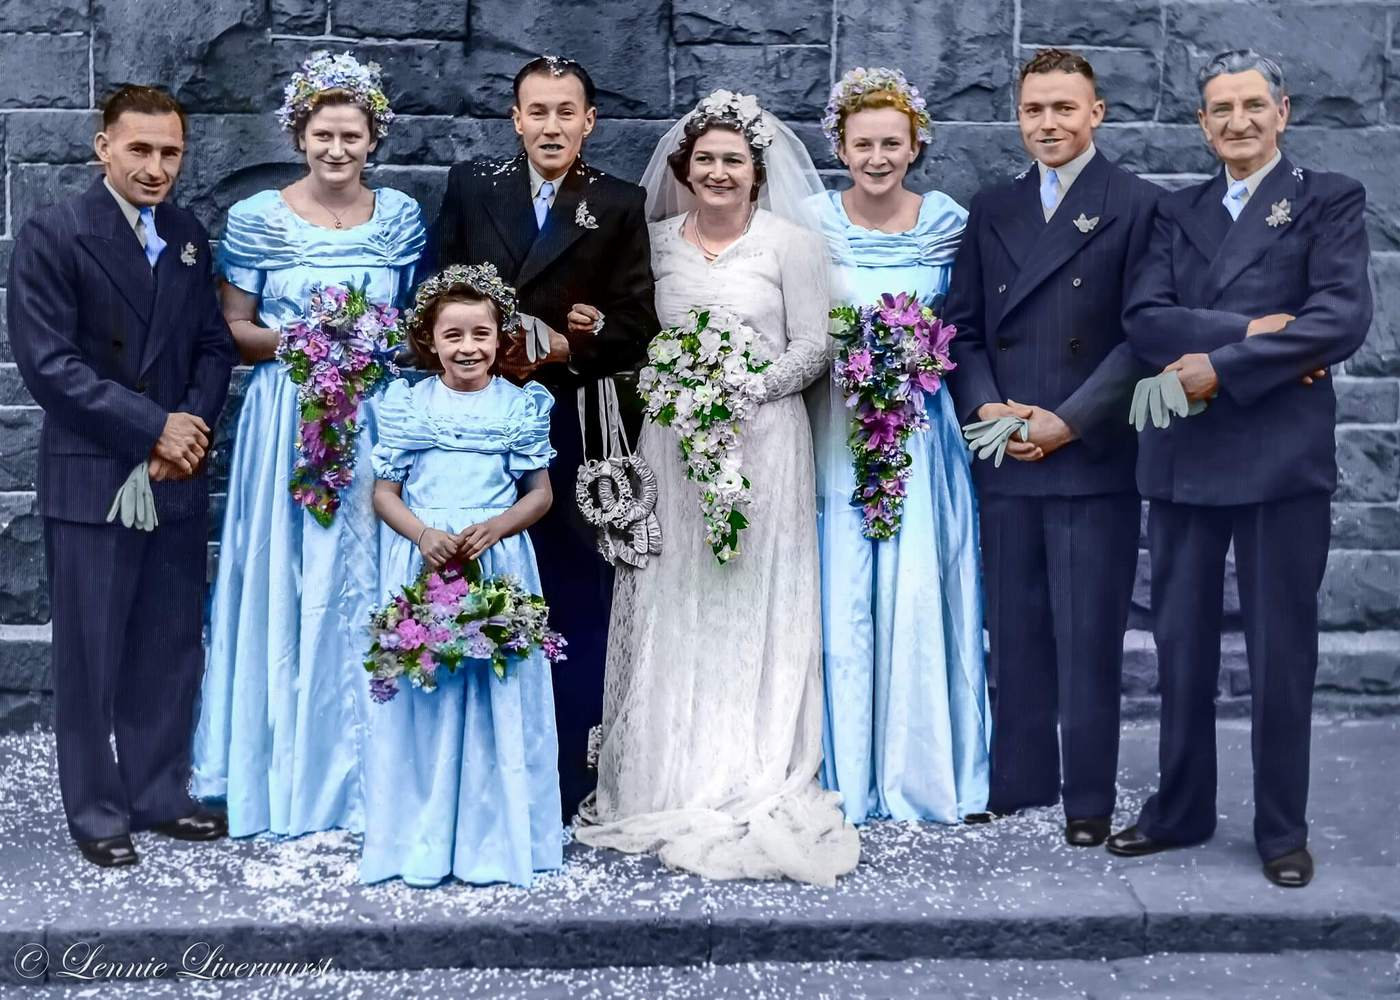 A wedding photo (1948) from the family photo album. Colorized by Lennie Liverwurst